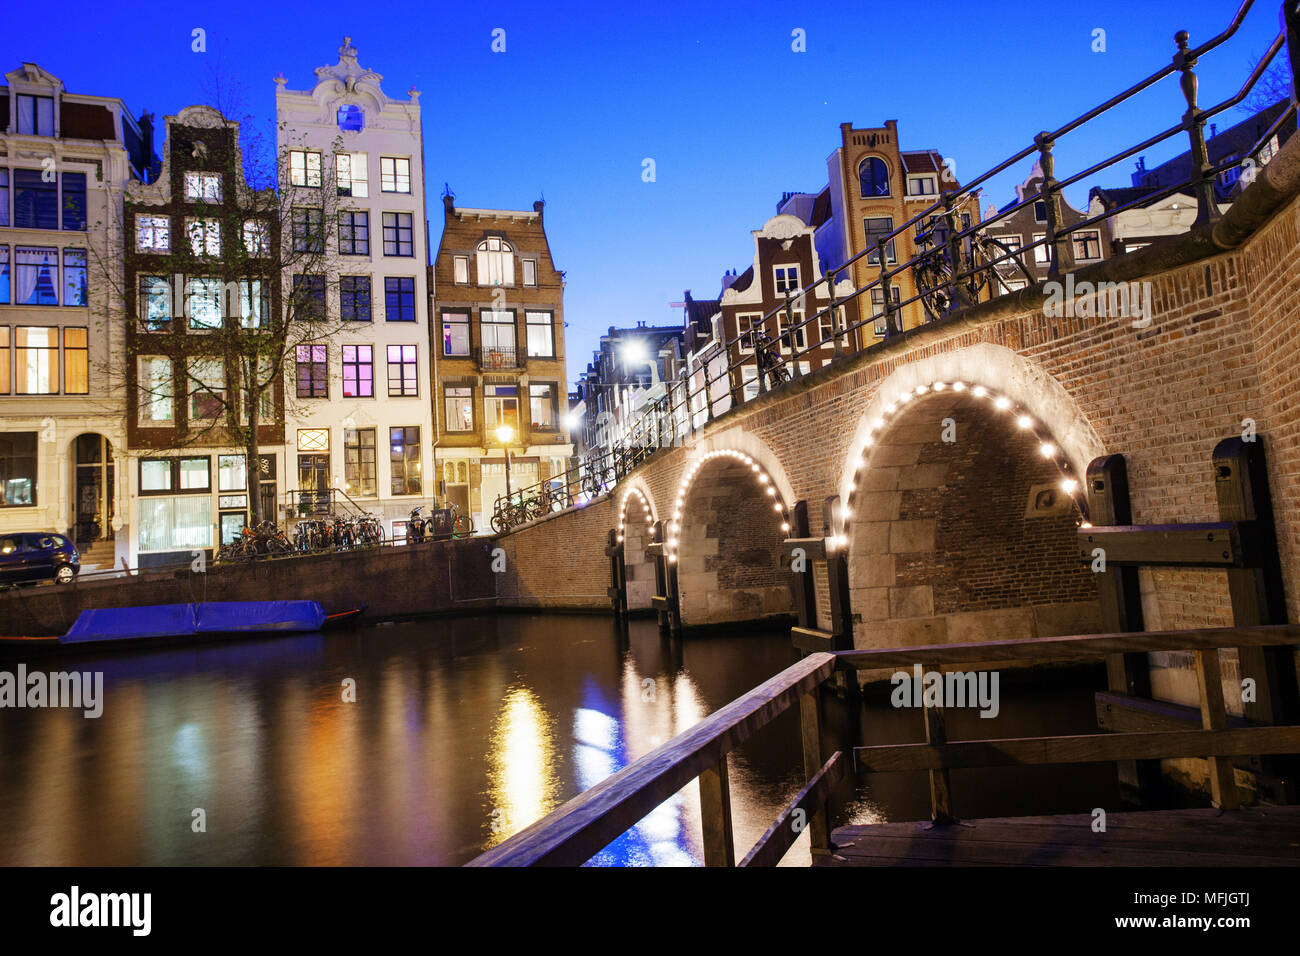 View of tall 18th century buildings on a canal in Amsterdam, Holland, Netherlands, Europe Stock Photo